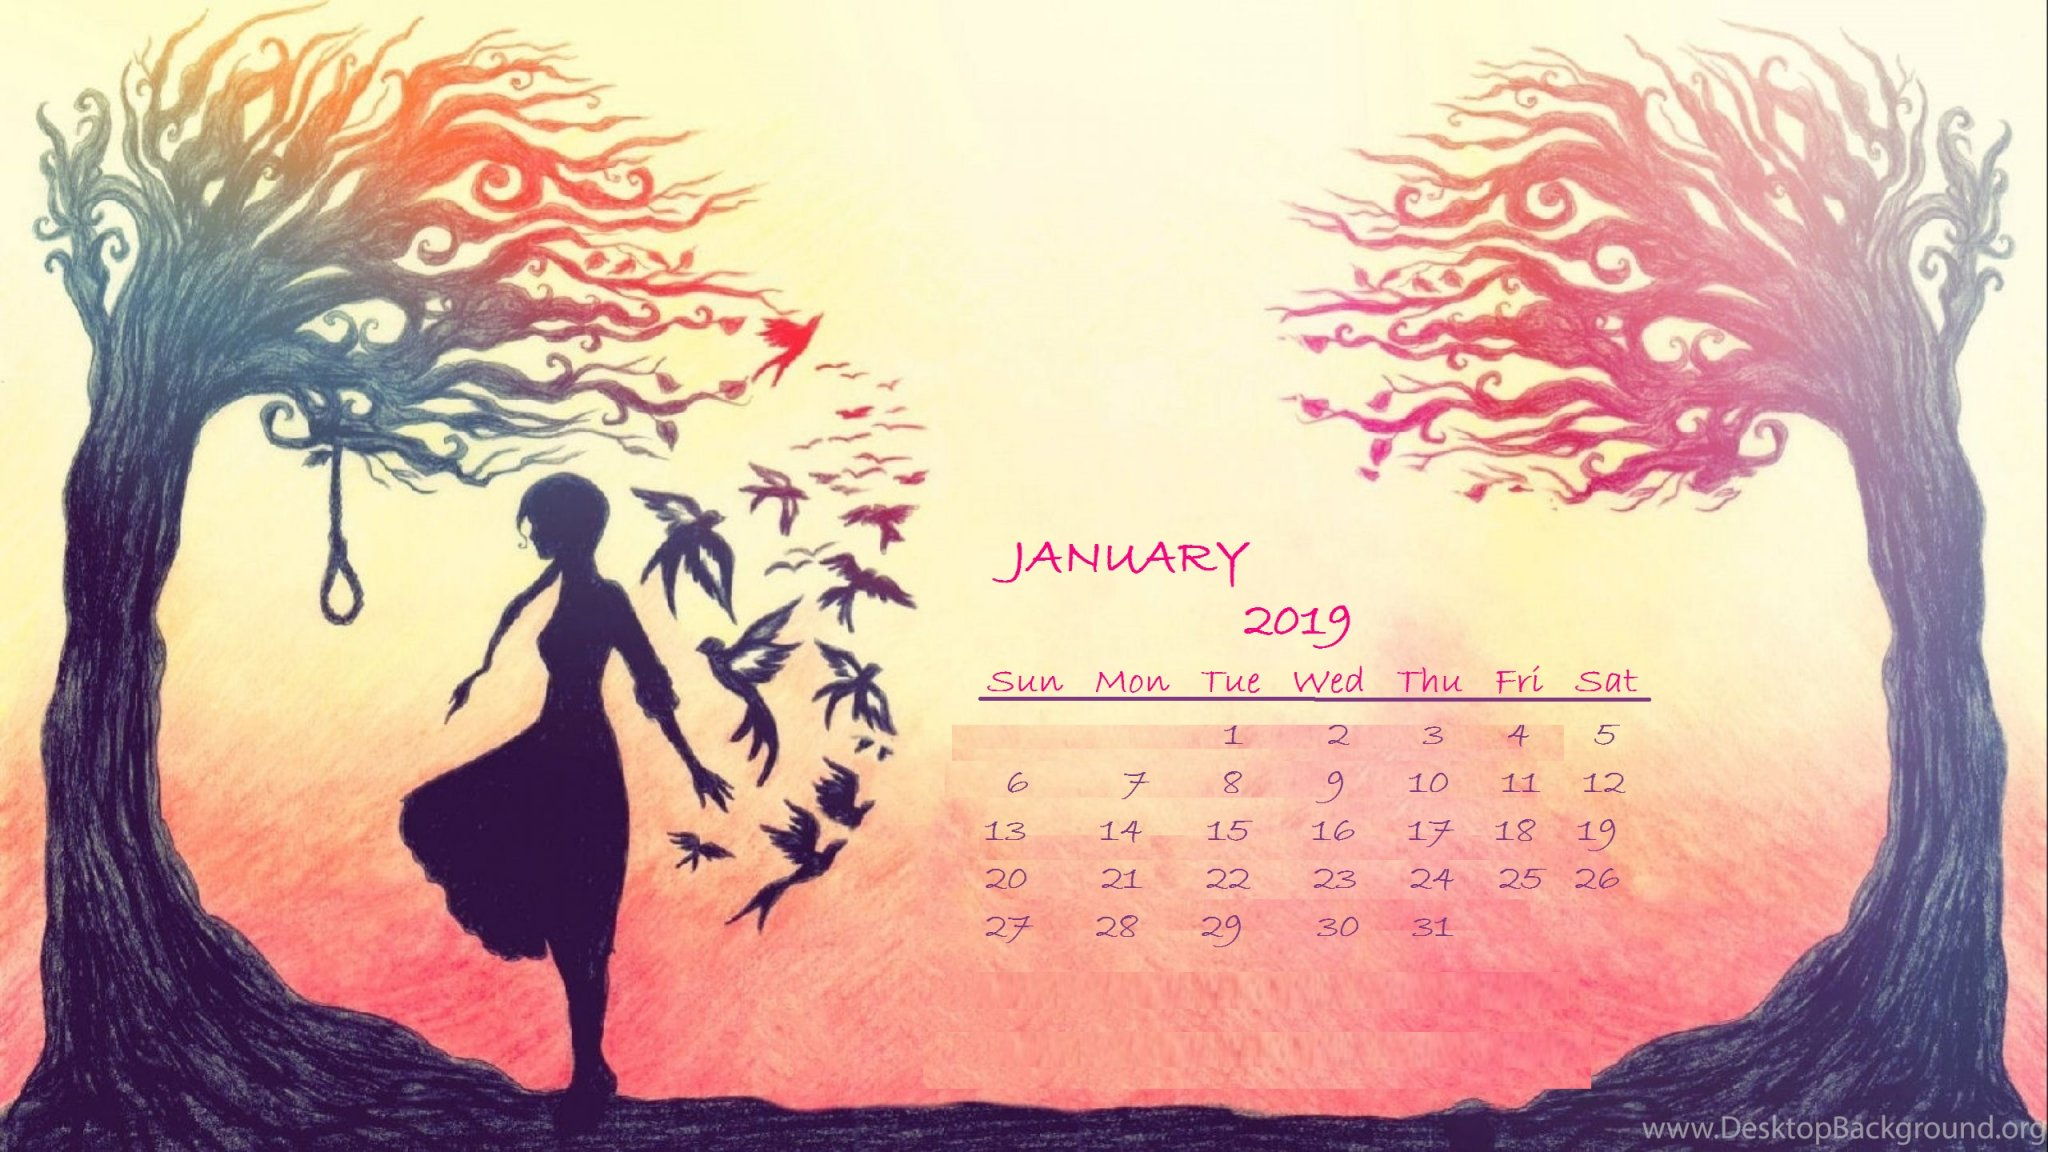 January 2019 Landscape Desktop Calendar